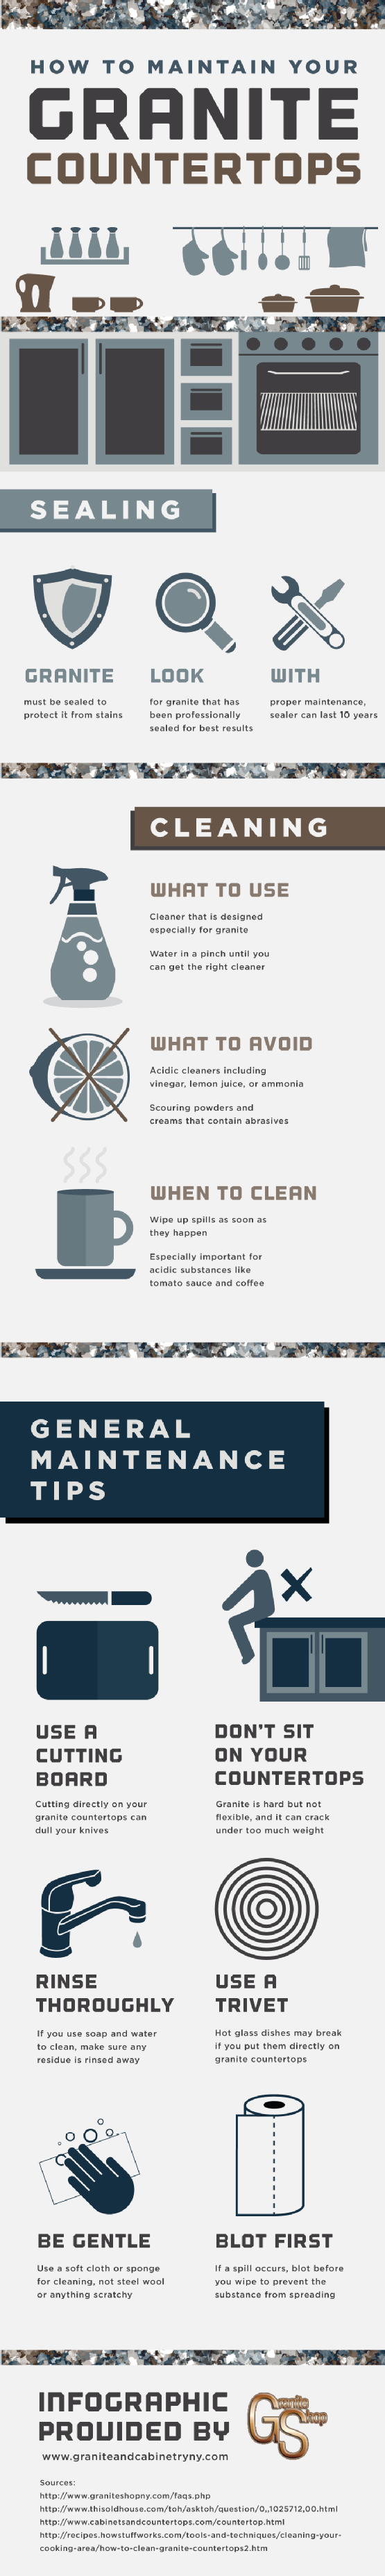 infographic to your countertops for new decades care this looking guide cleaning granite countertop keep how will